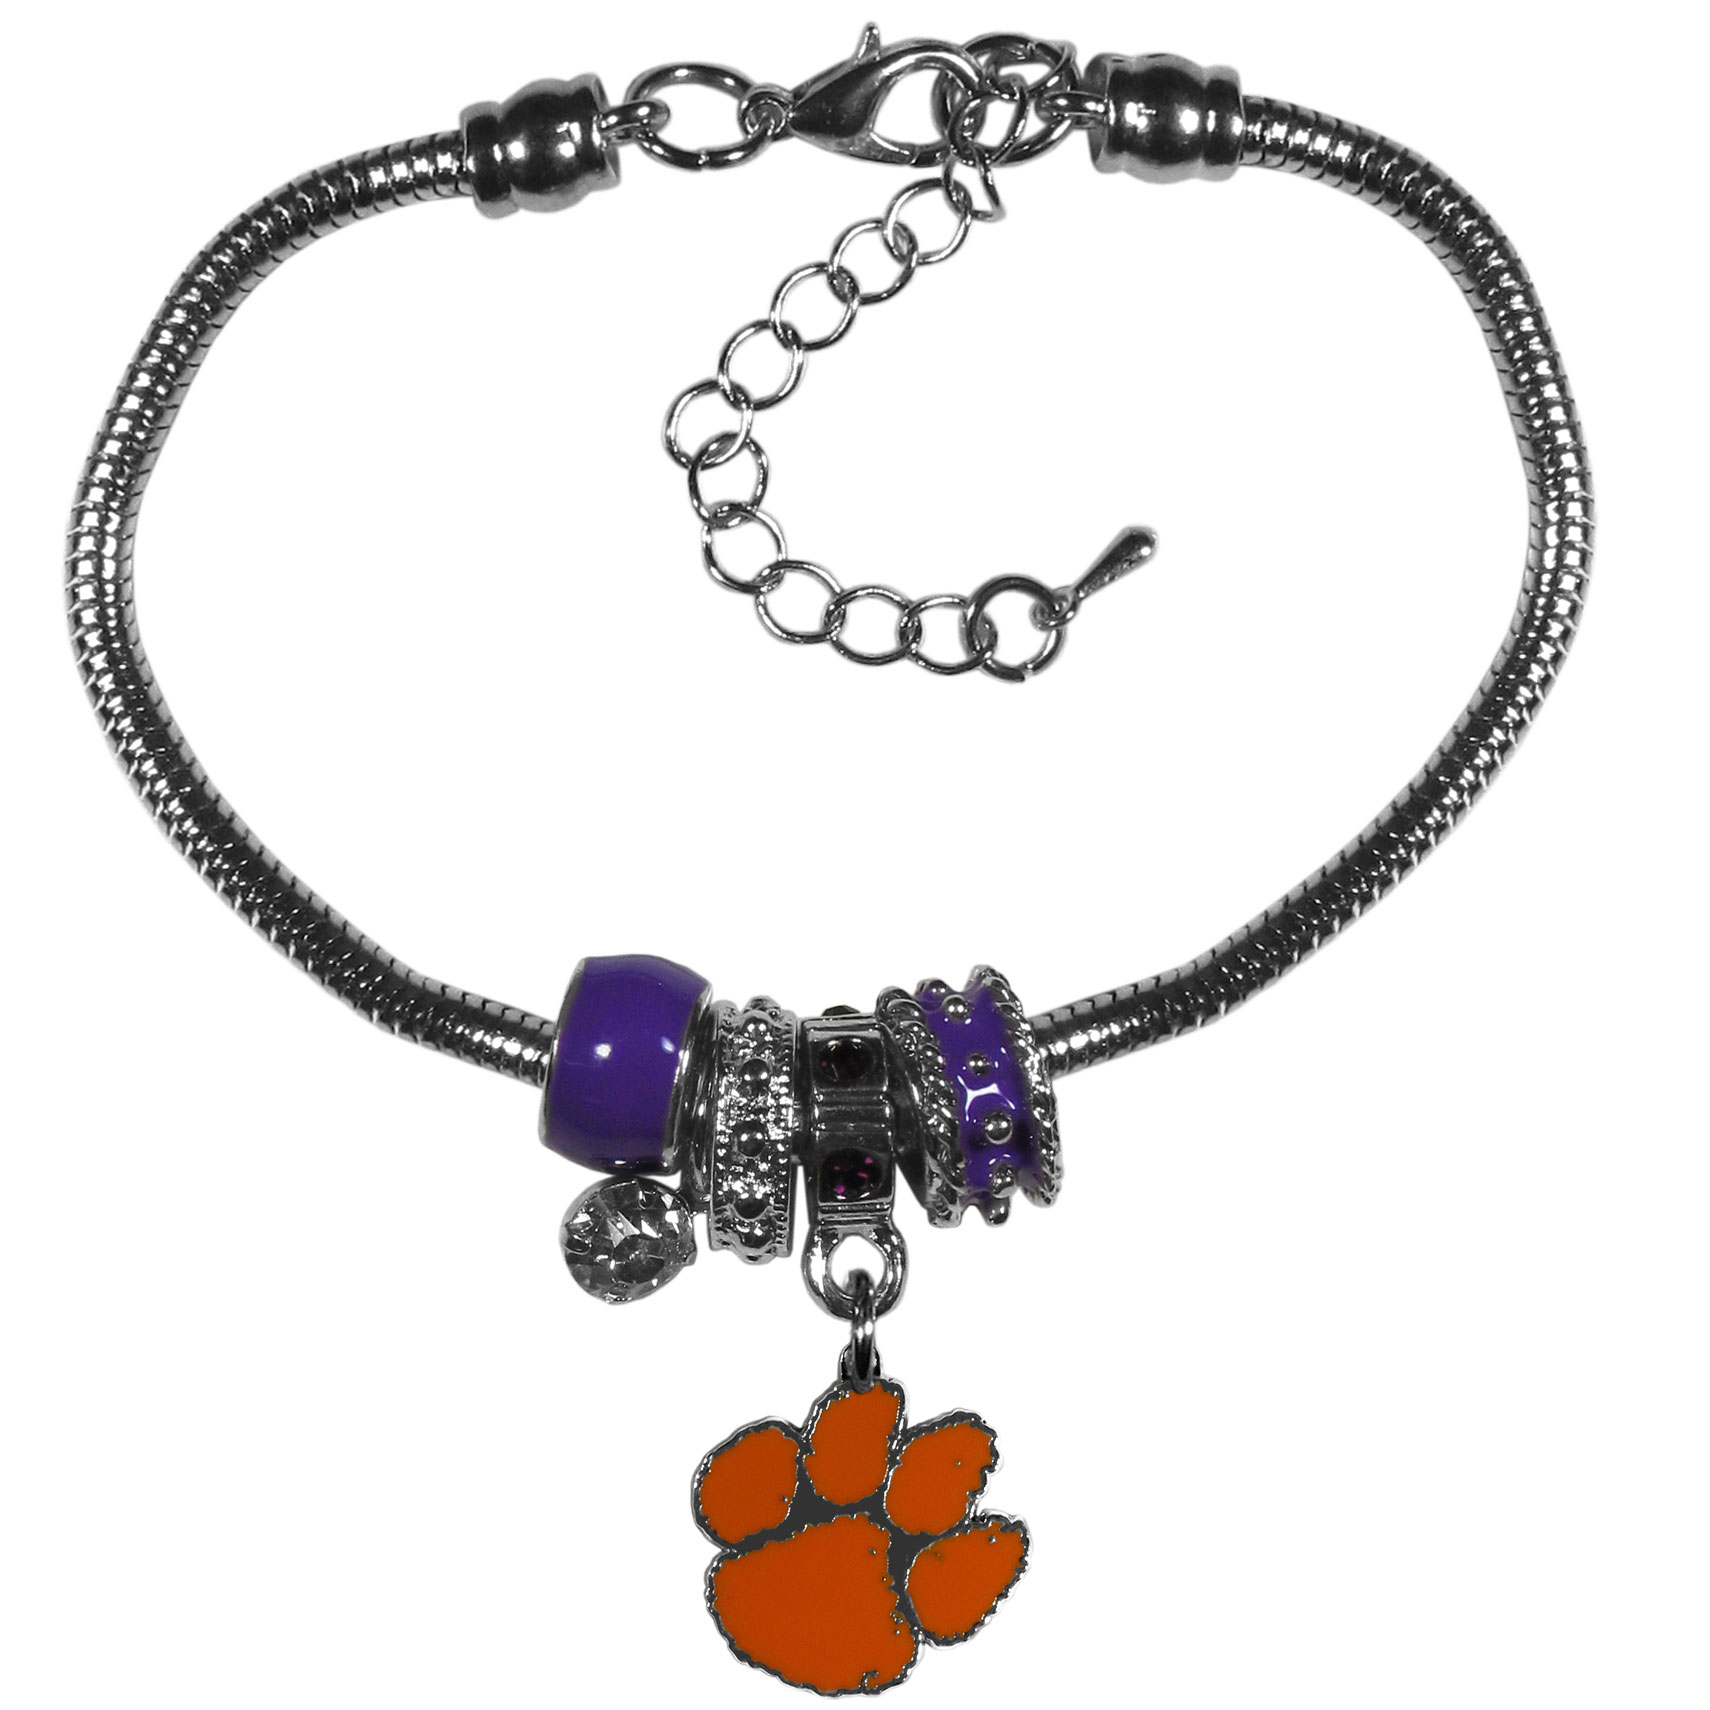 Clemson Tigers Euro Bead Bracelet - We have combined the wildly popular Euro style beads with your favorite team to create our  Clemson Tigers bead bracelet. The 7.5 inch snake chain with 2 inch extender features 4 Euro beads with enameled team colors and rhinestone accents with a high polish, nickel free charm and rhinestone charm. Perfect way to show off your team pride.